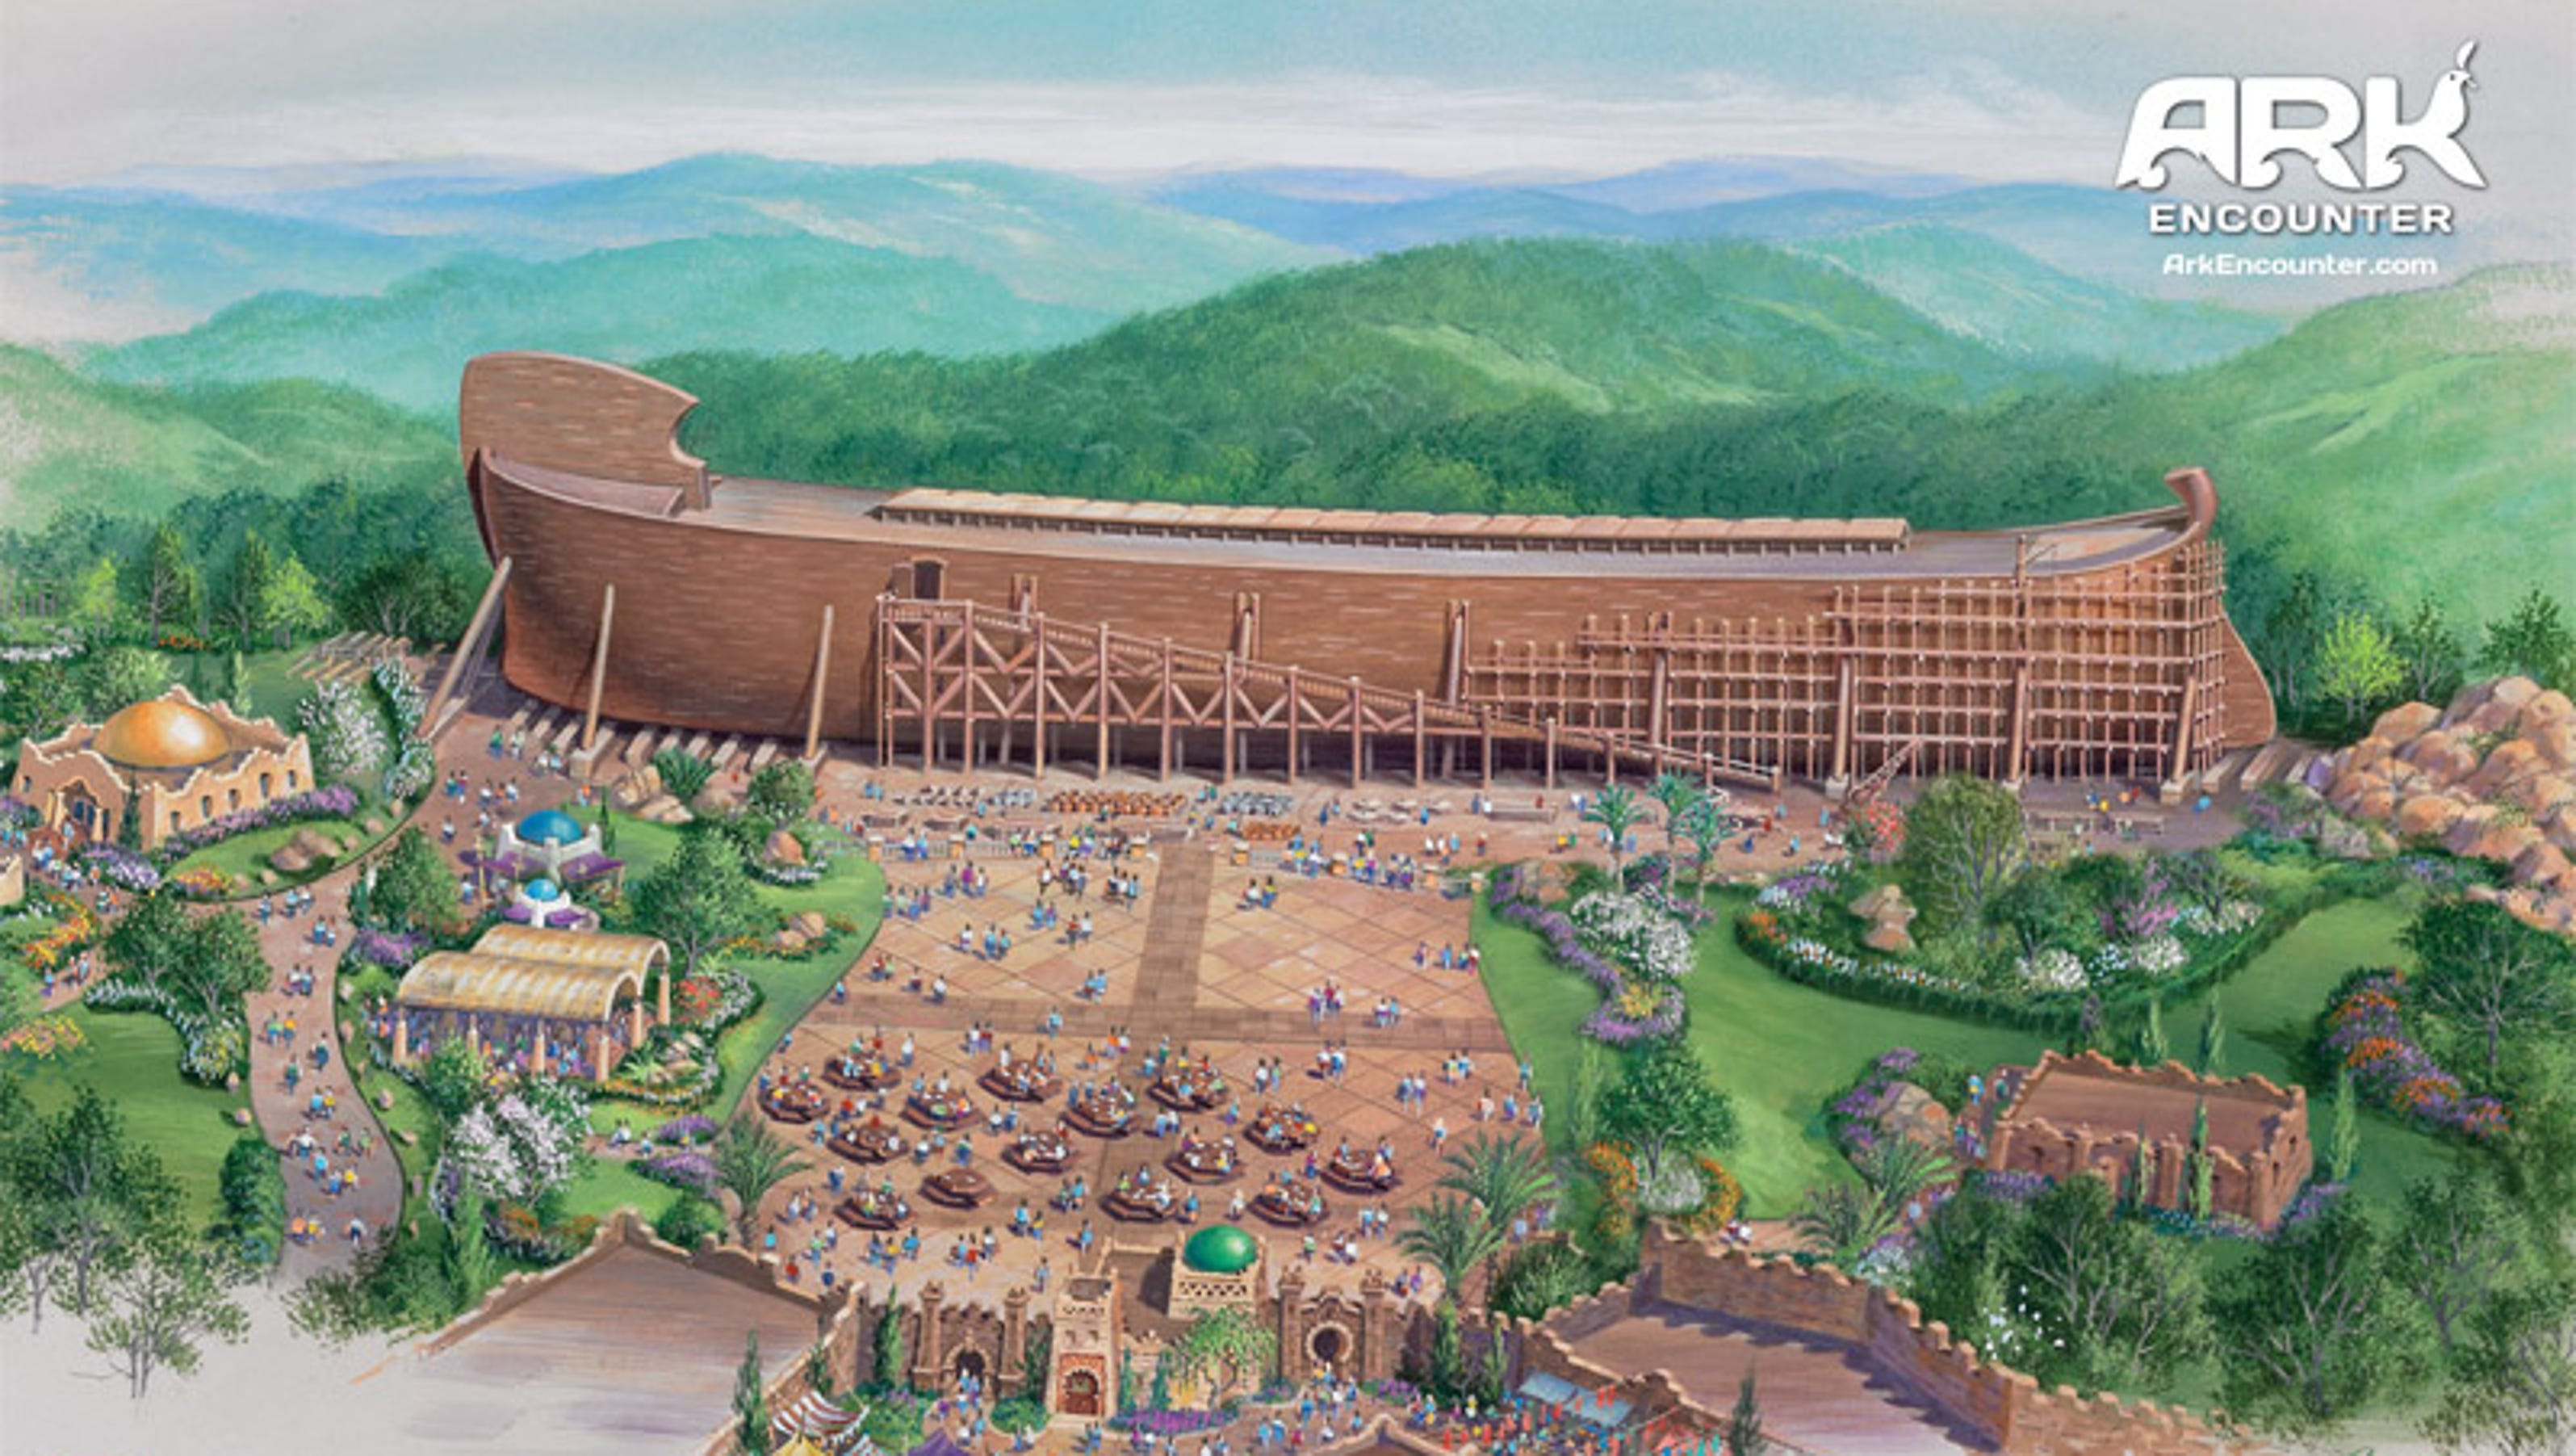 Ky. rejects $18M in tax incentives for Noah's Ark park